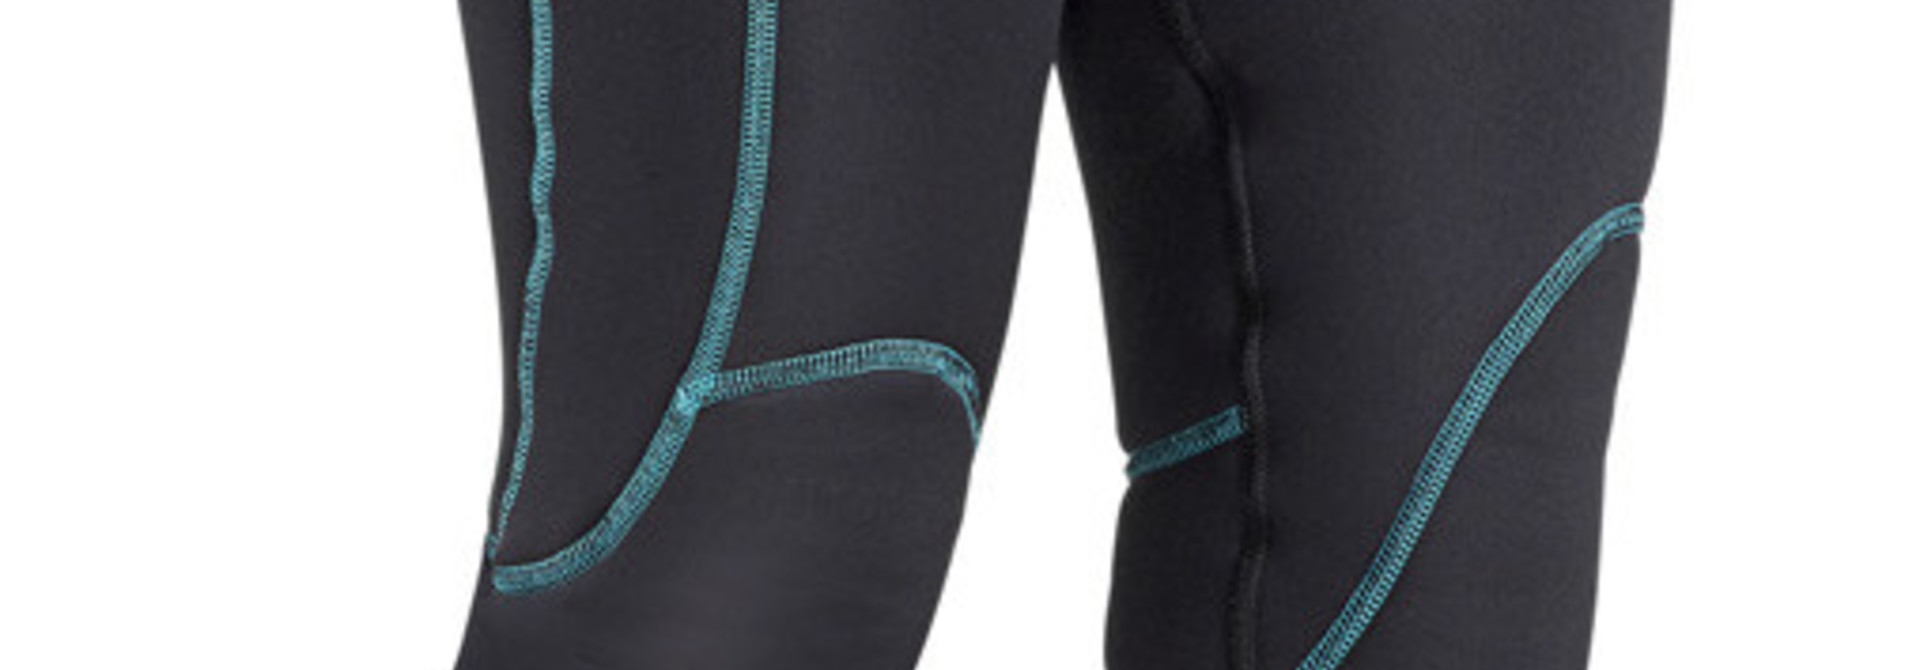 K2 Medium Dames Broek